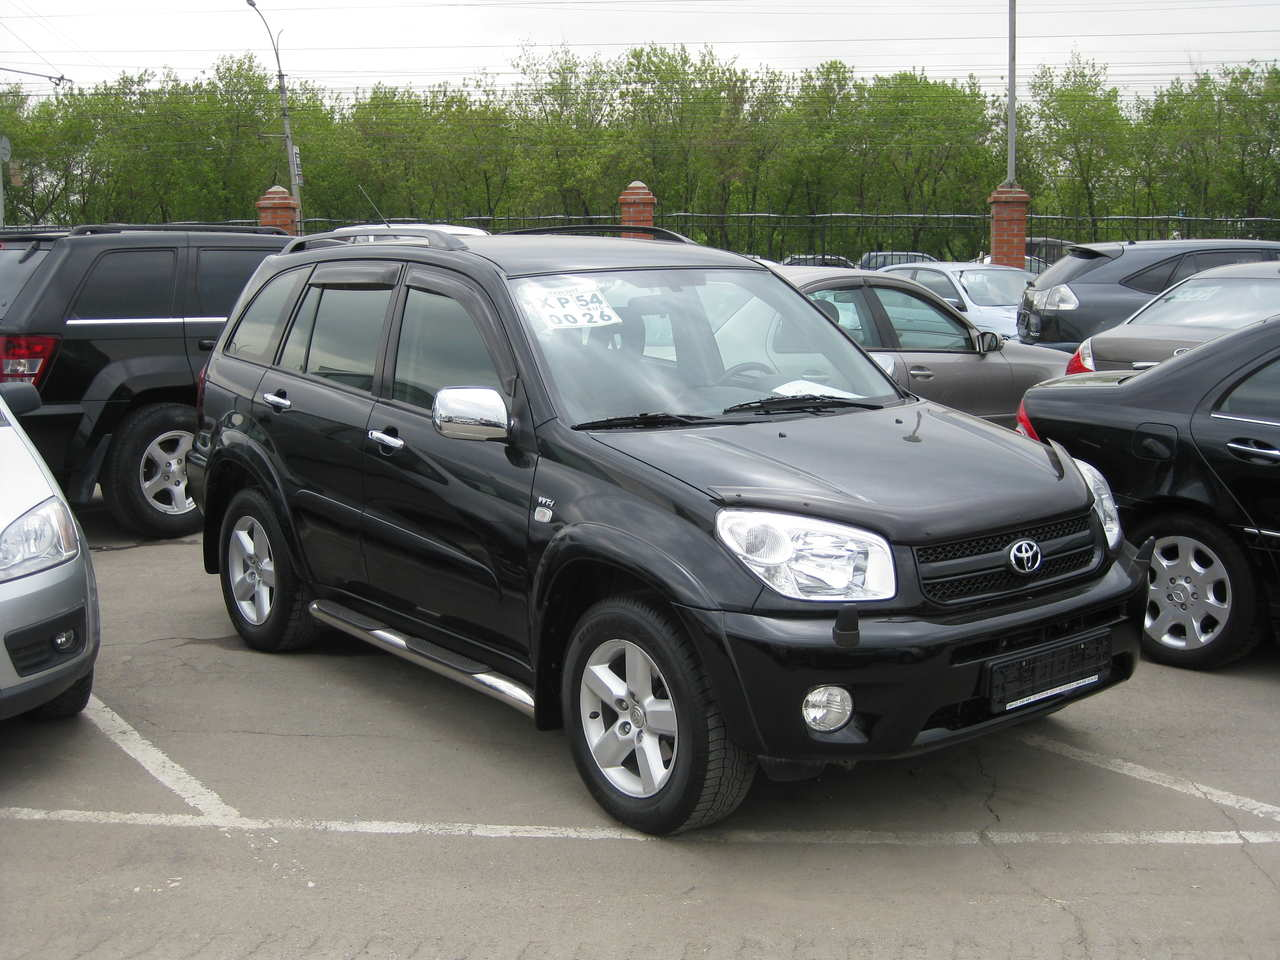 used 2005 toyota rav4 photos 2000cc gasoline automatic. Black Bedroom Furniture Sets. Home Design Ideas